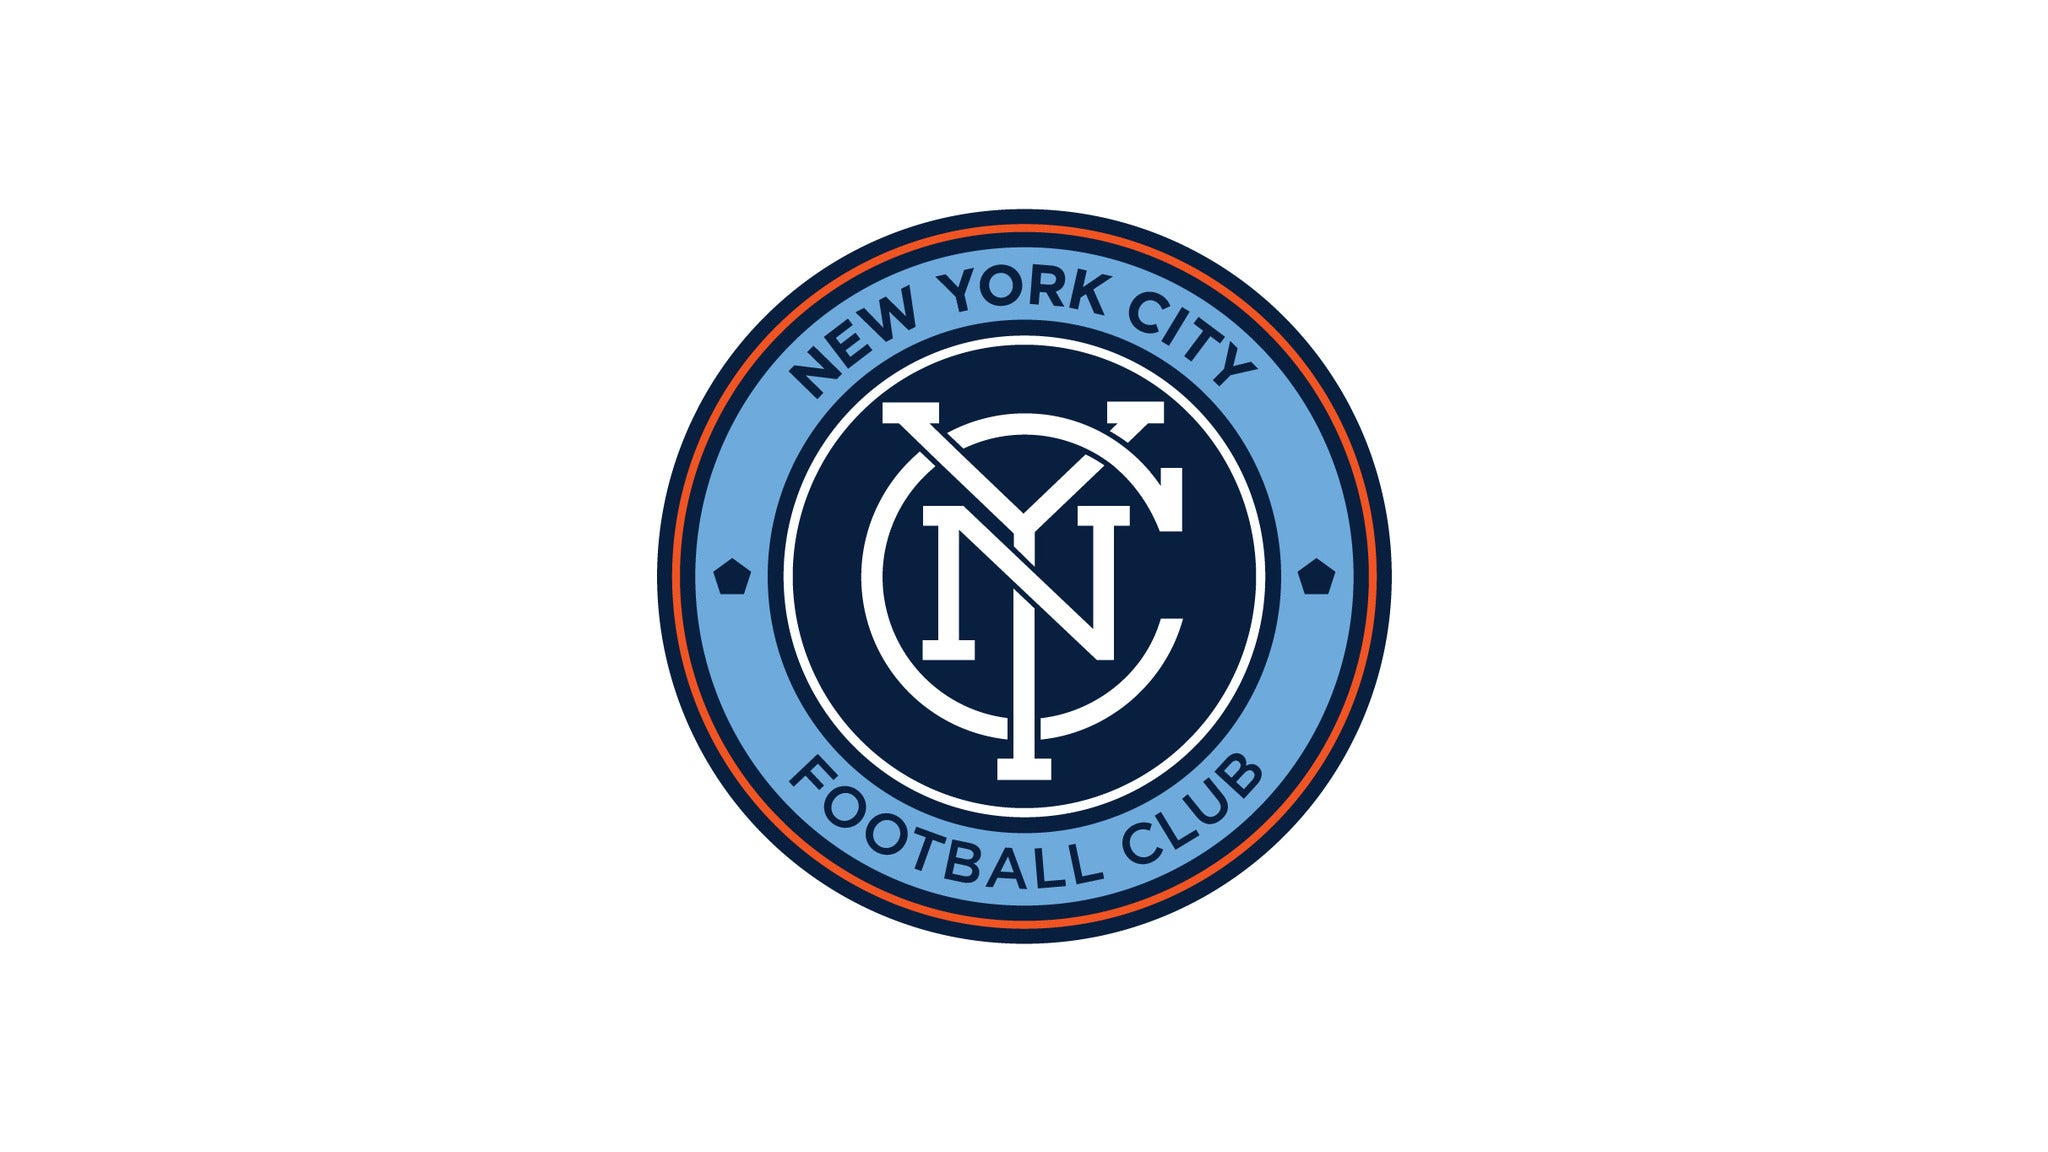 New York City FC vs. Toronto FC at NYCFC at Yankee Stadium